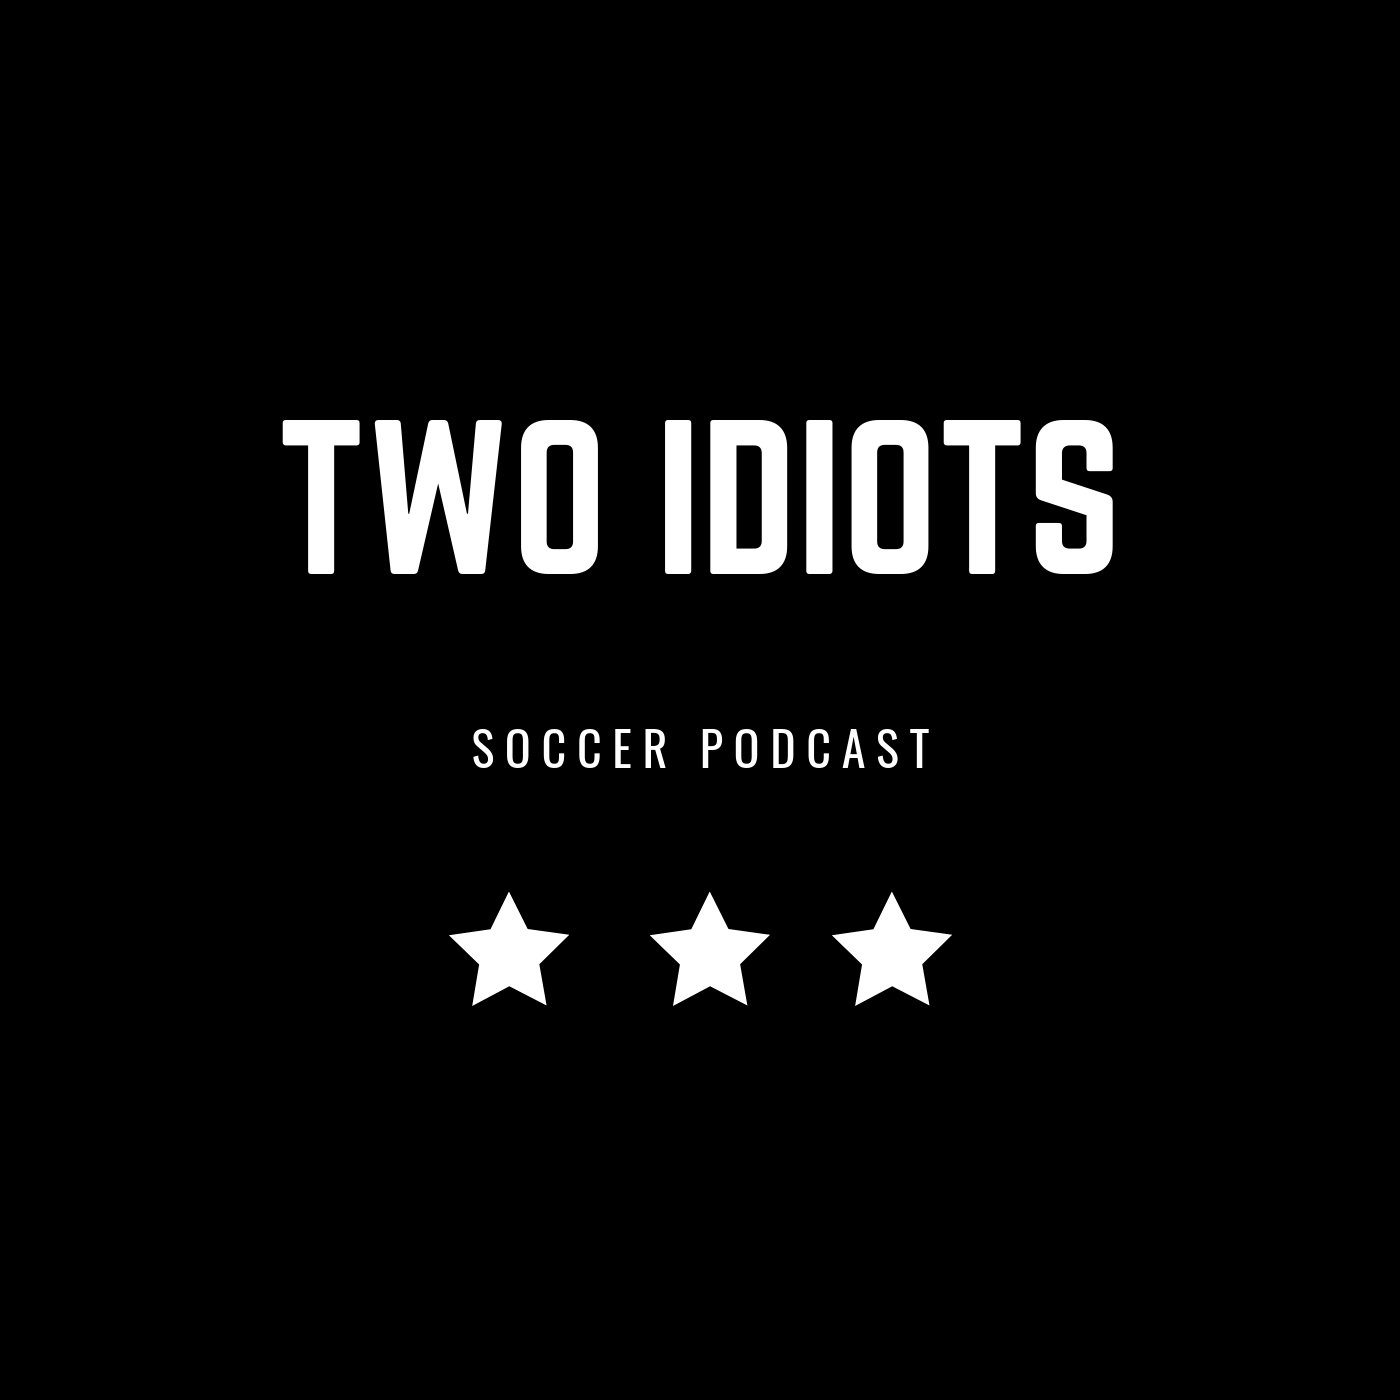 Episode 11: PSG against the Remontada, DCU 1st long road trip, Liverpool's hopes fading